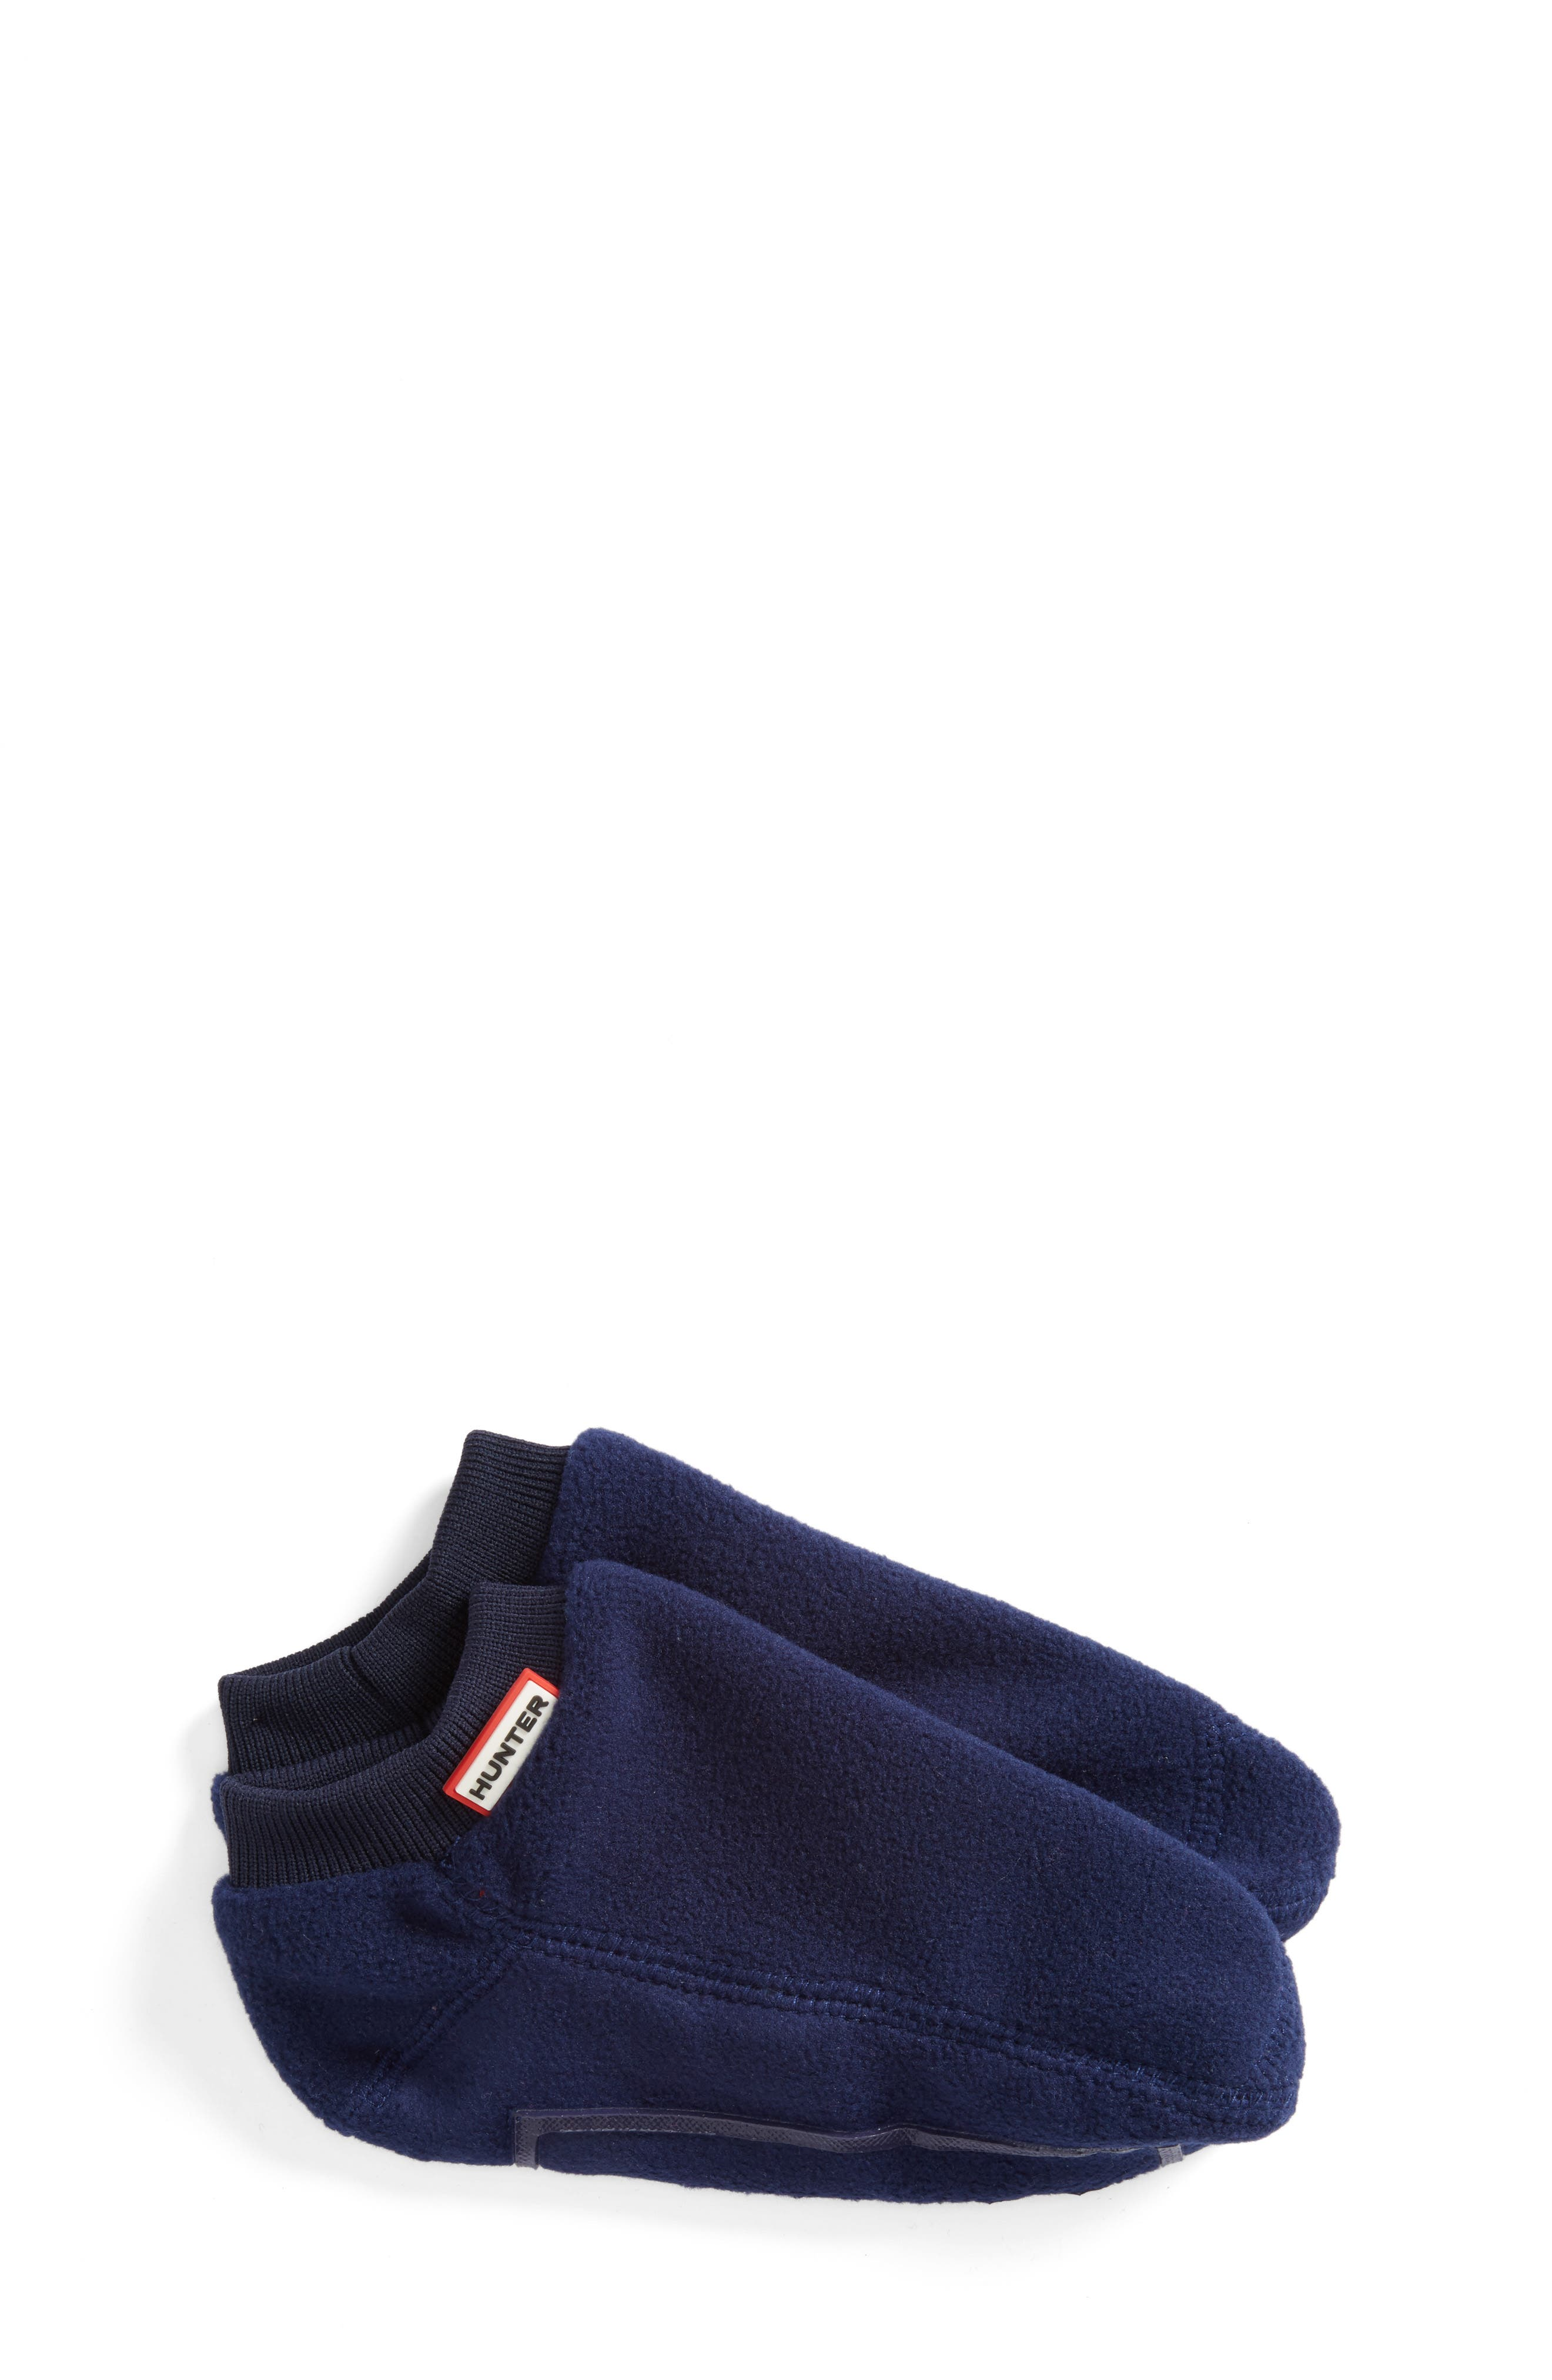 Fitted No-Show Socks,                         Main,                         color, Navy